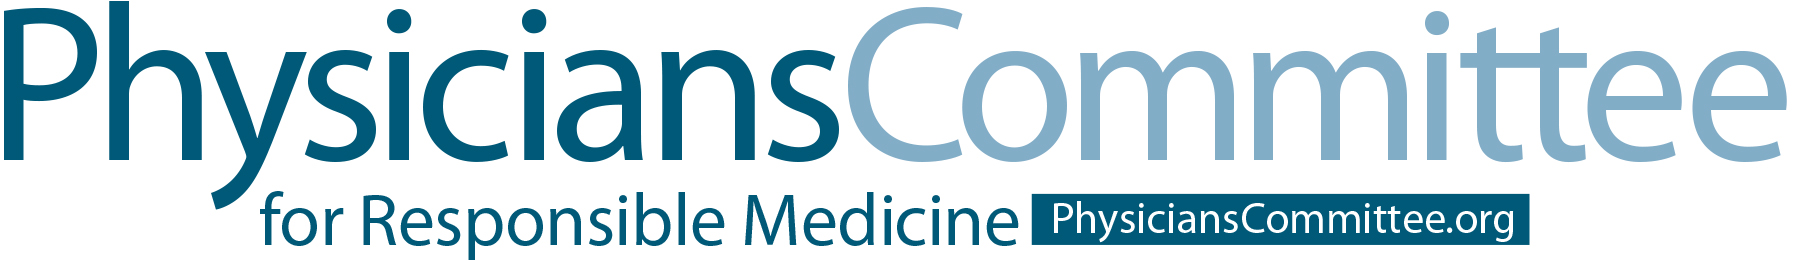 The Physicians Committee for Responsible Medicine's logo